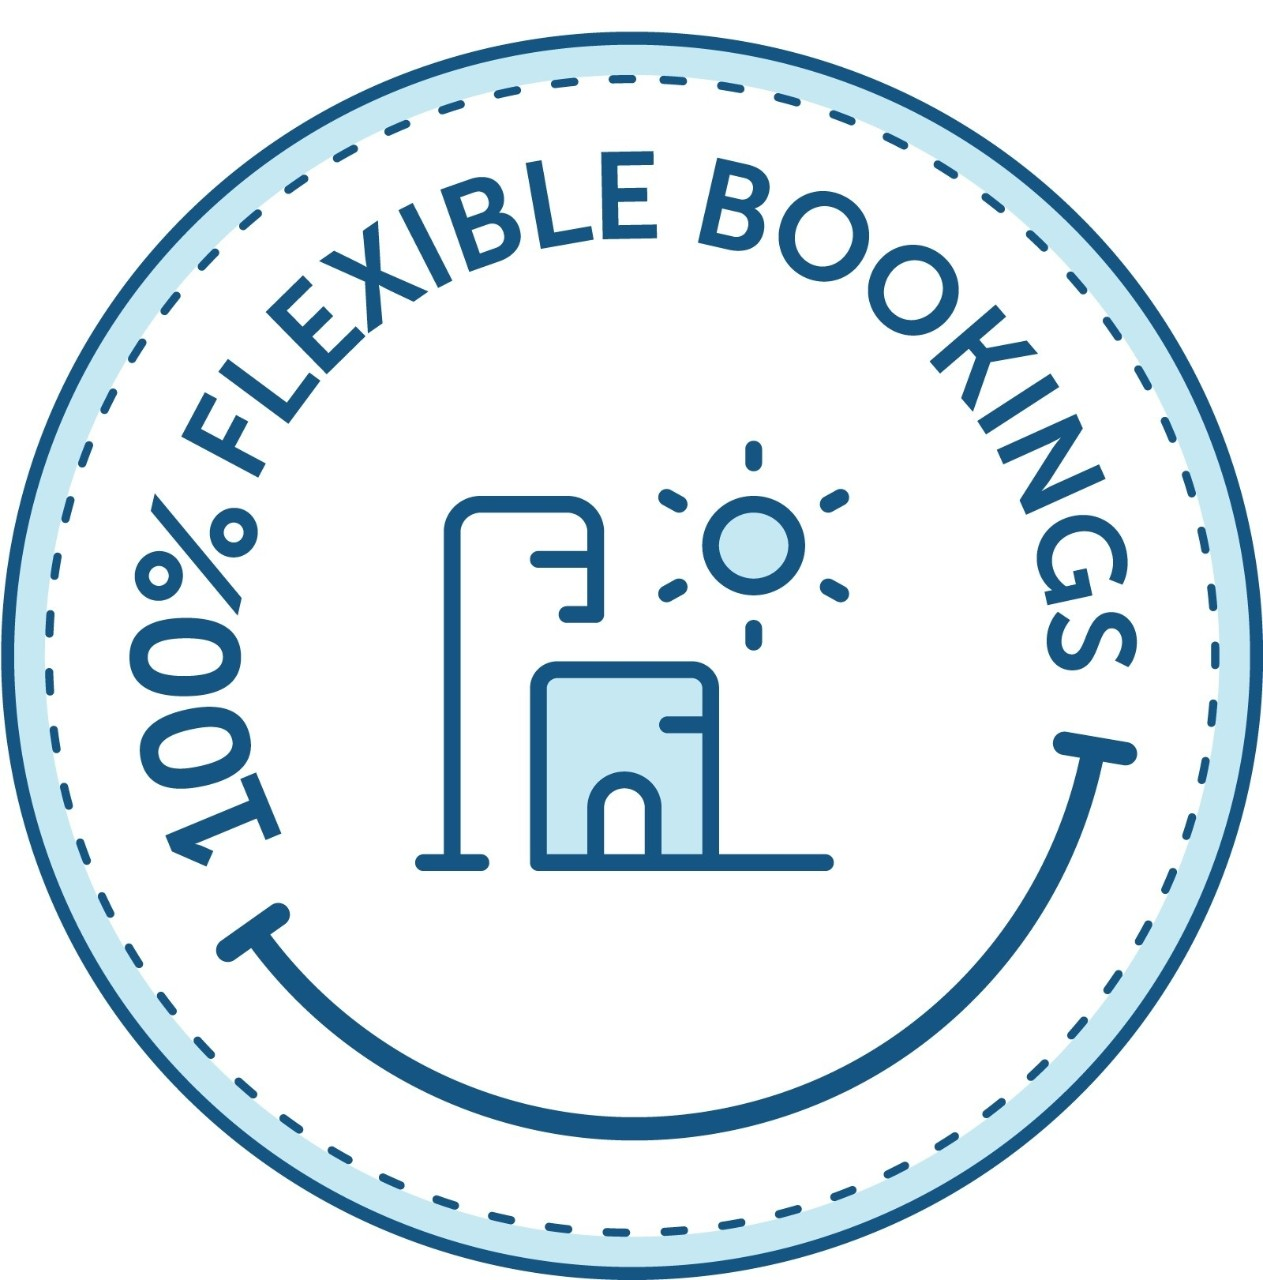 100% flexible booking